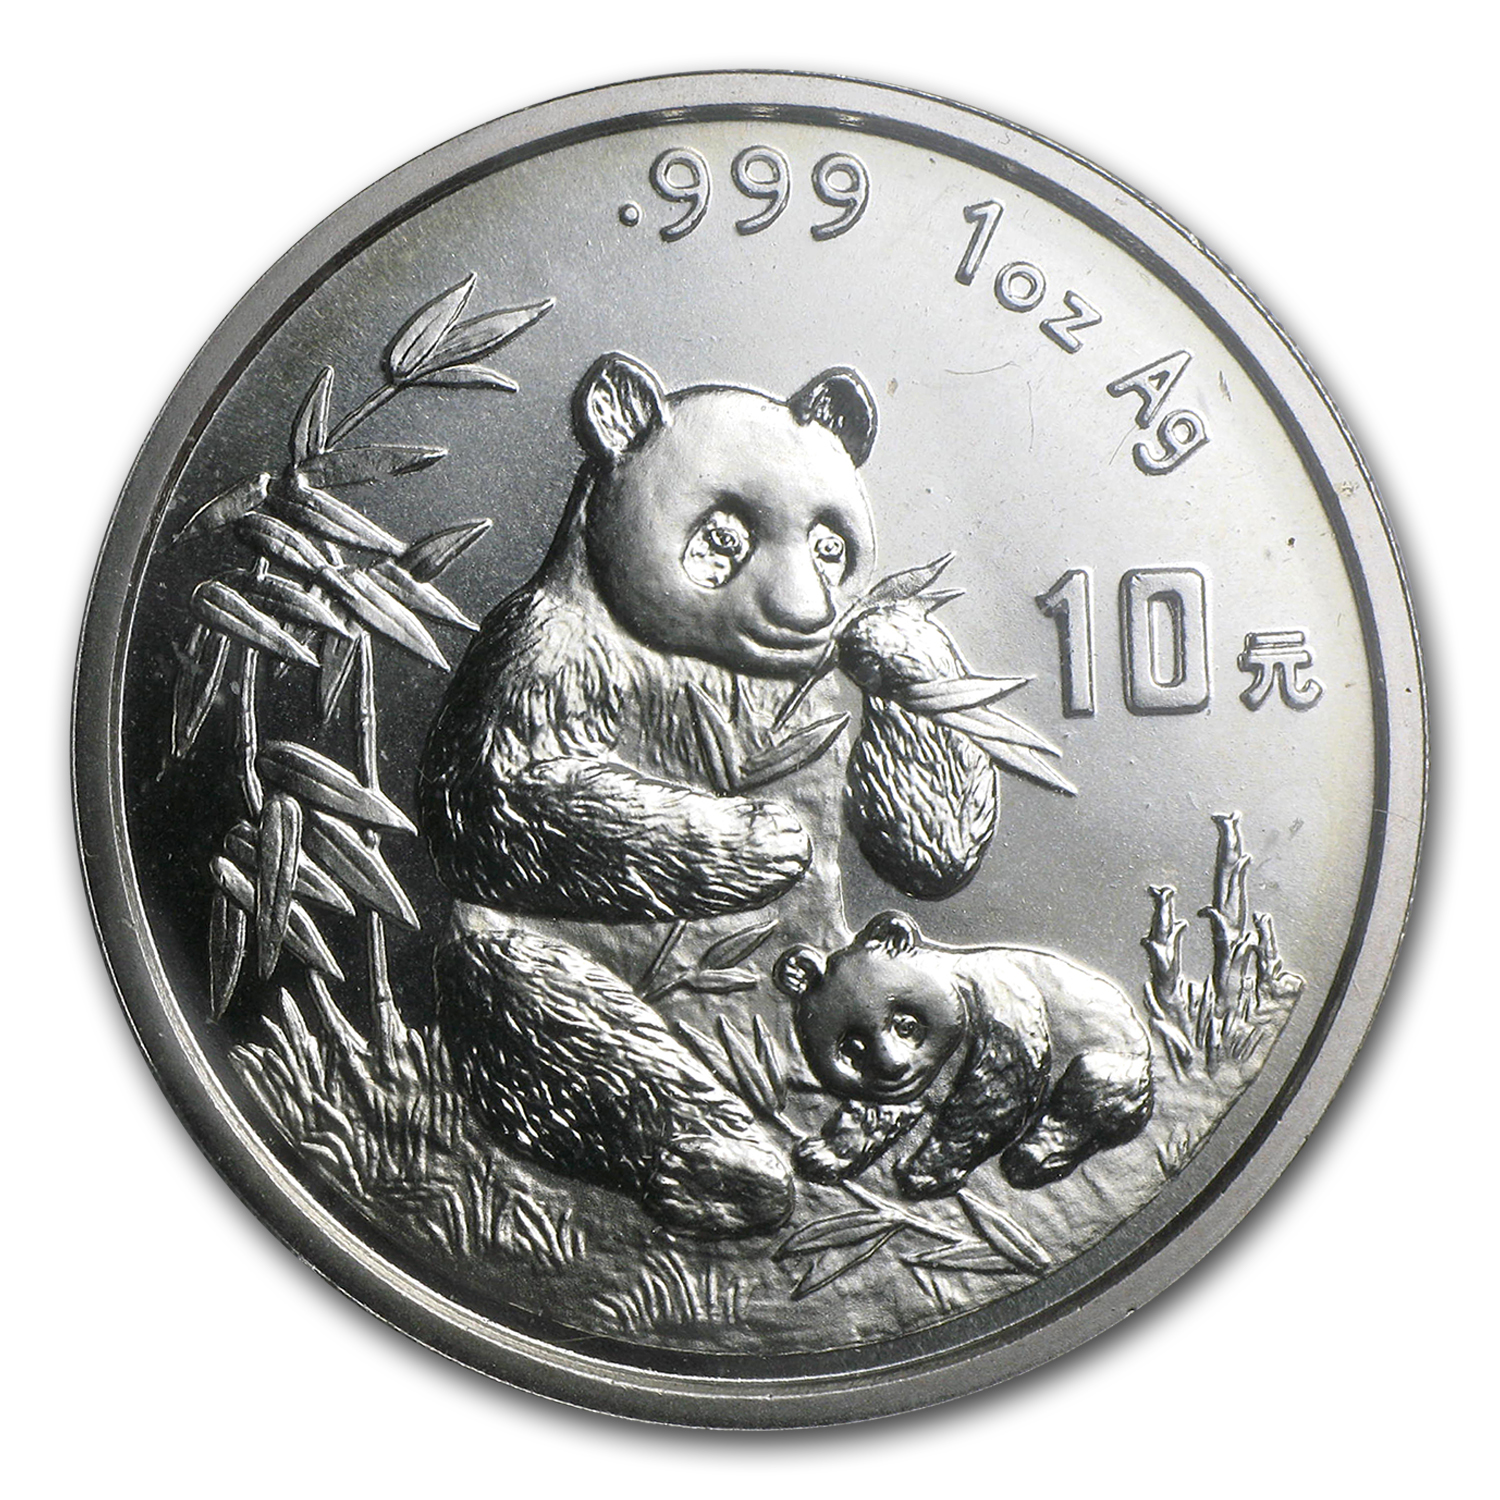 1996 1 oz Silver Chinese Panda Large Date BU (Sealed)